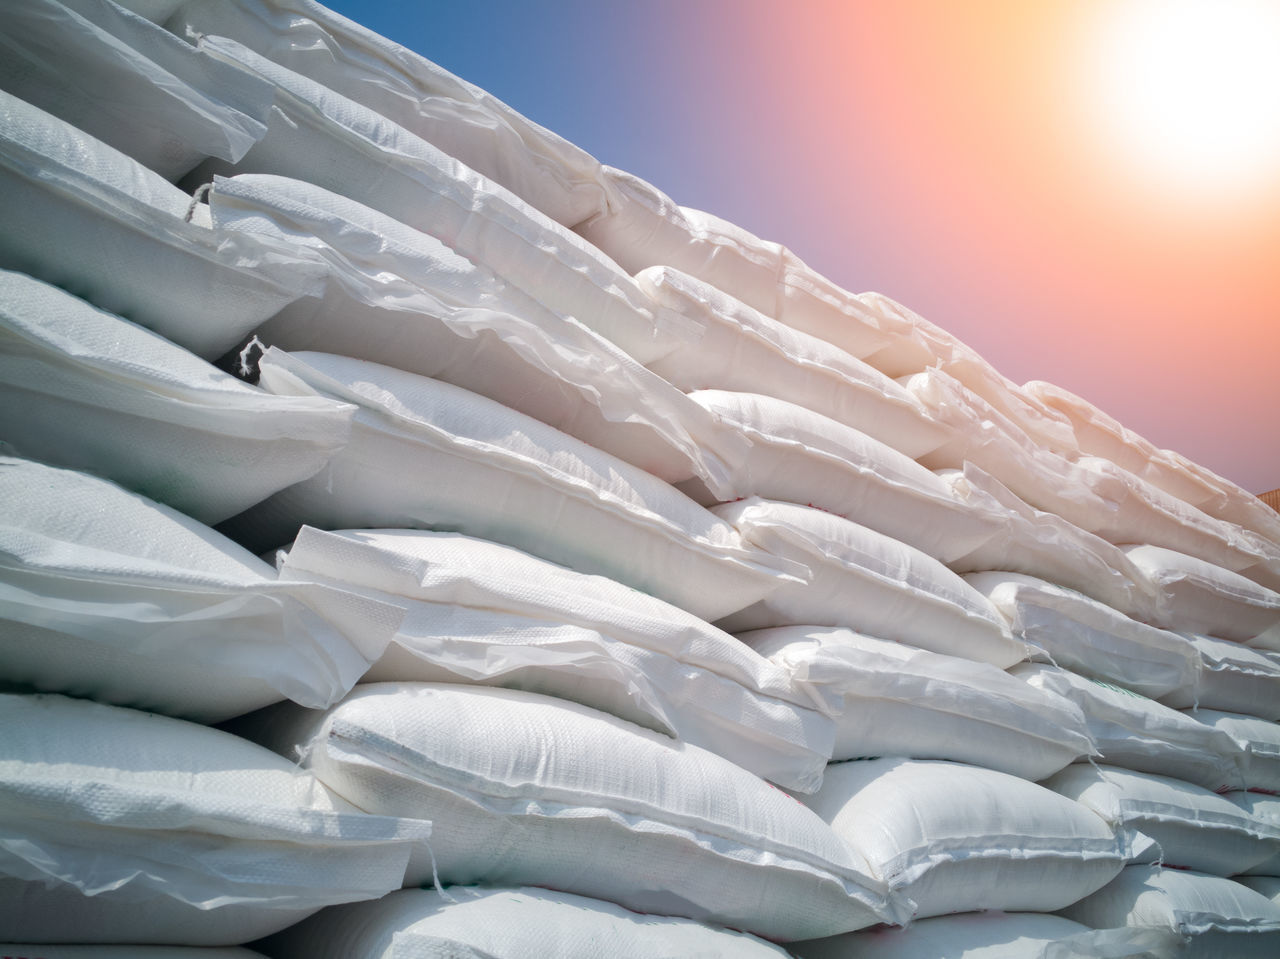 Stacking of sugar bags on truck Wrapping Wholesale White Wheat Warehouse Truck Transportation Trade Bulk Grain Rice Tapioca Row ship Import Export Bag Distribution packaging Seed Agronomy